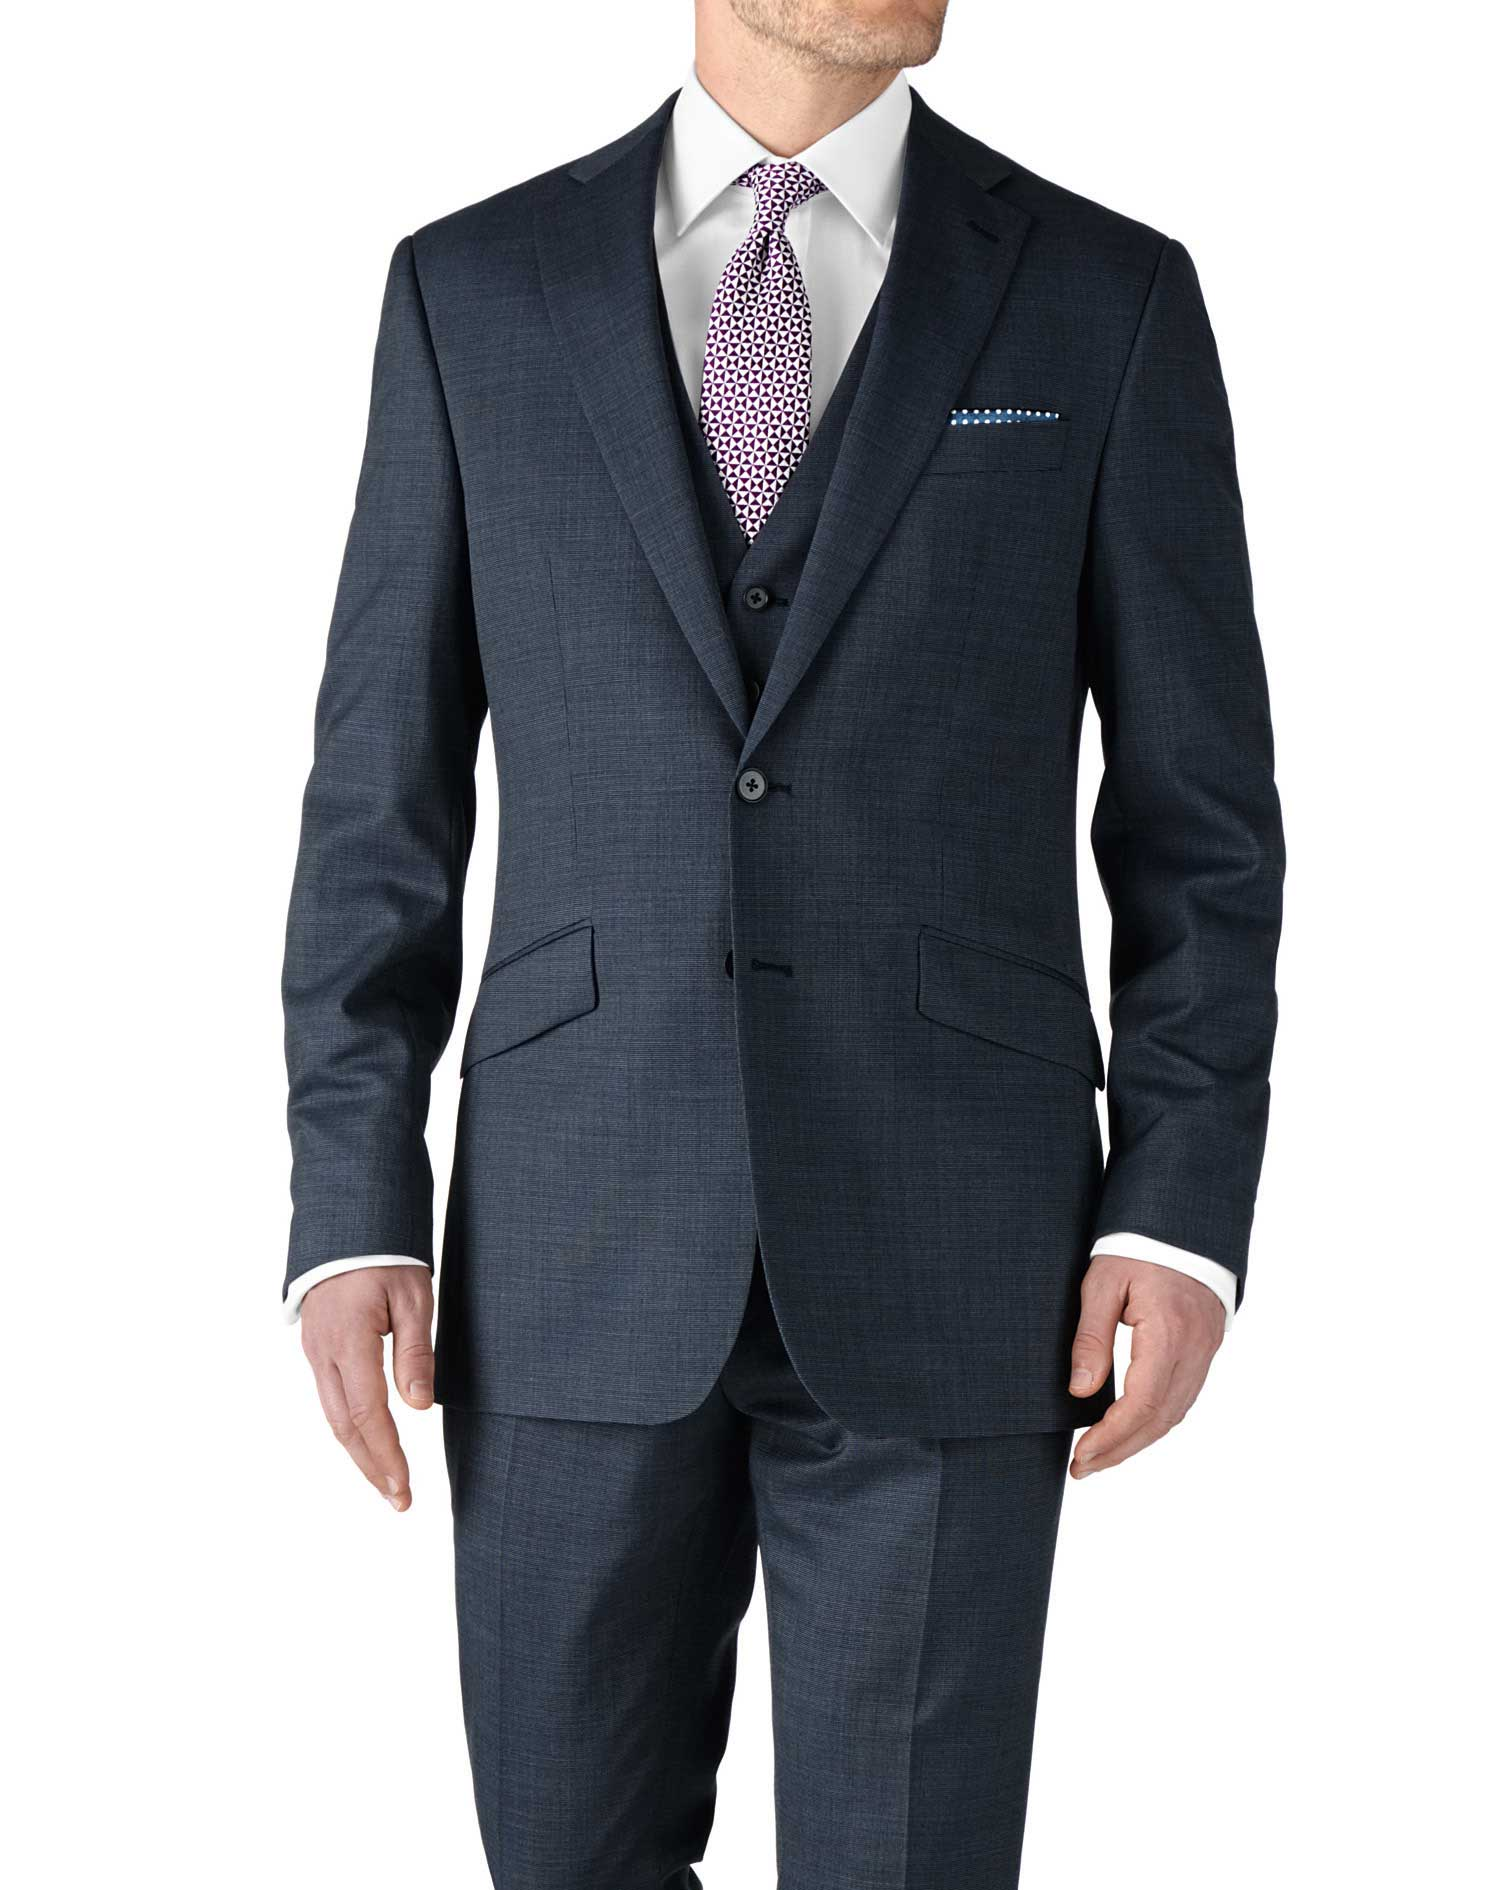 Airforce Blue Slim Fit End-On-End Business Suit Wool Jacket Size 40 Regular by Charles Tyrwhitt